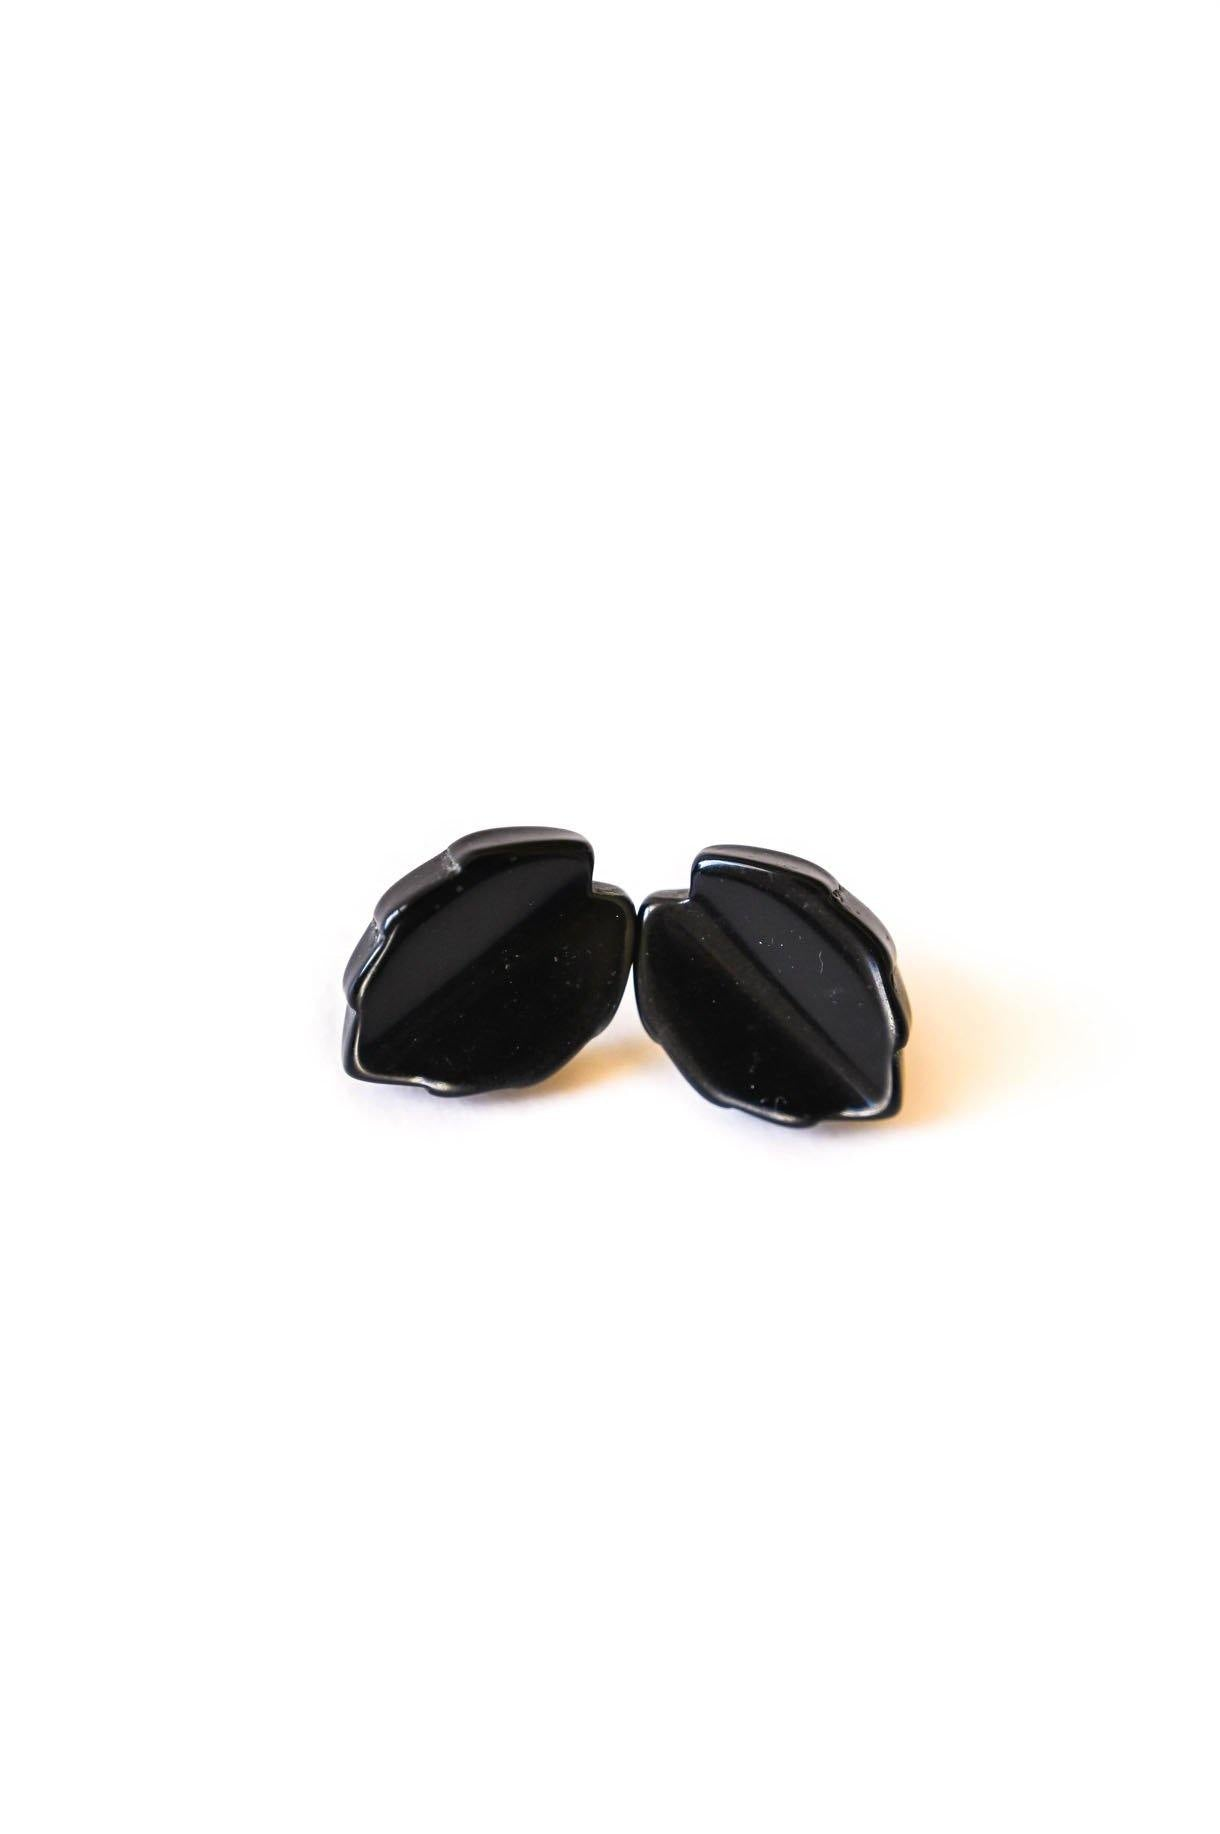 Black Leaf Pierced Earrings - Sweet & Spark